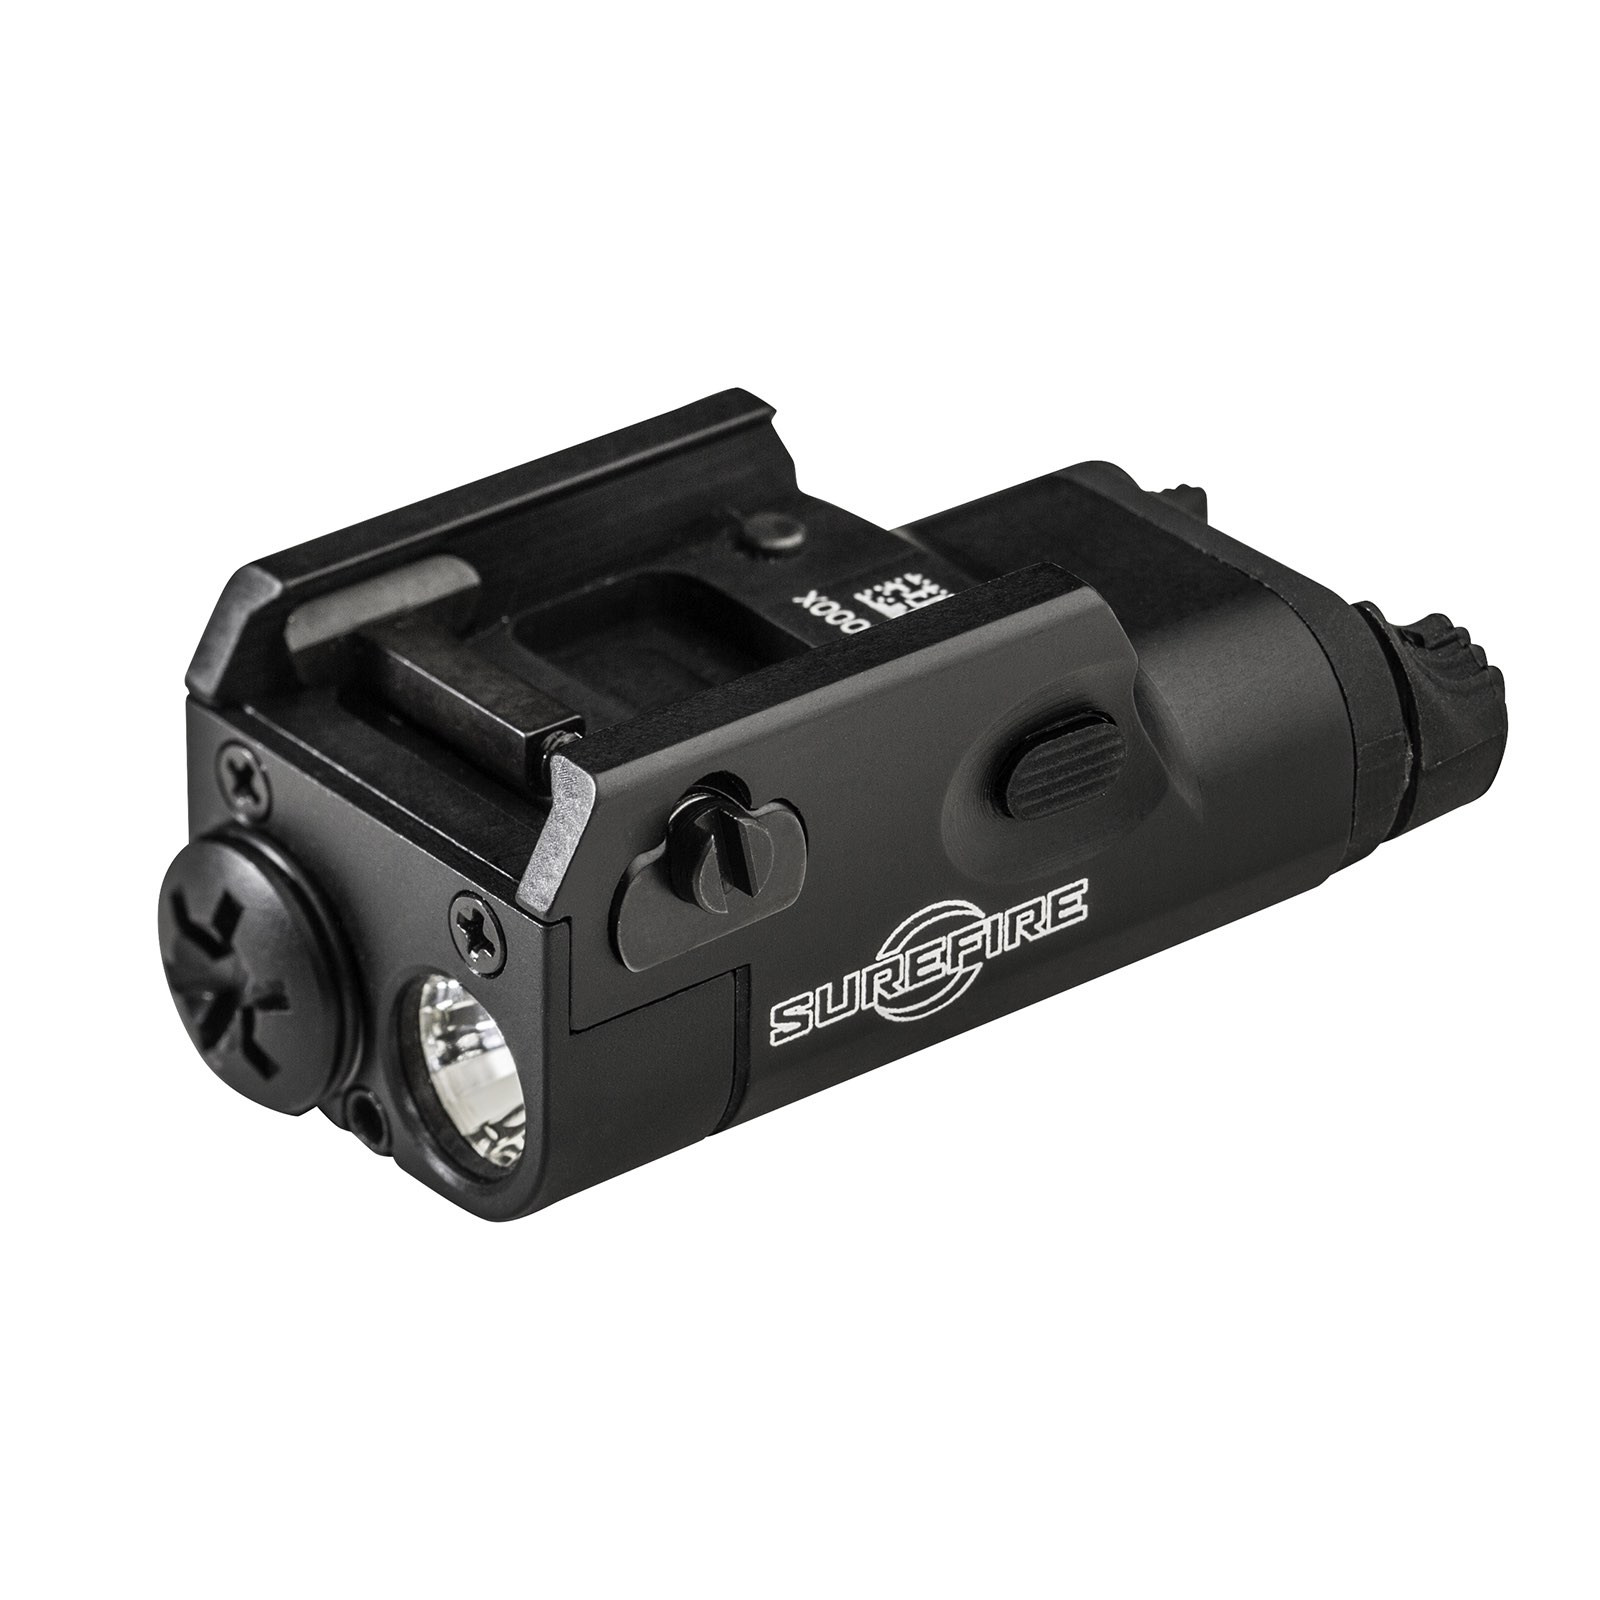 New SureFire Compact Pistol Light